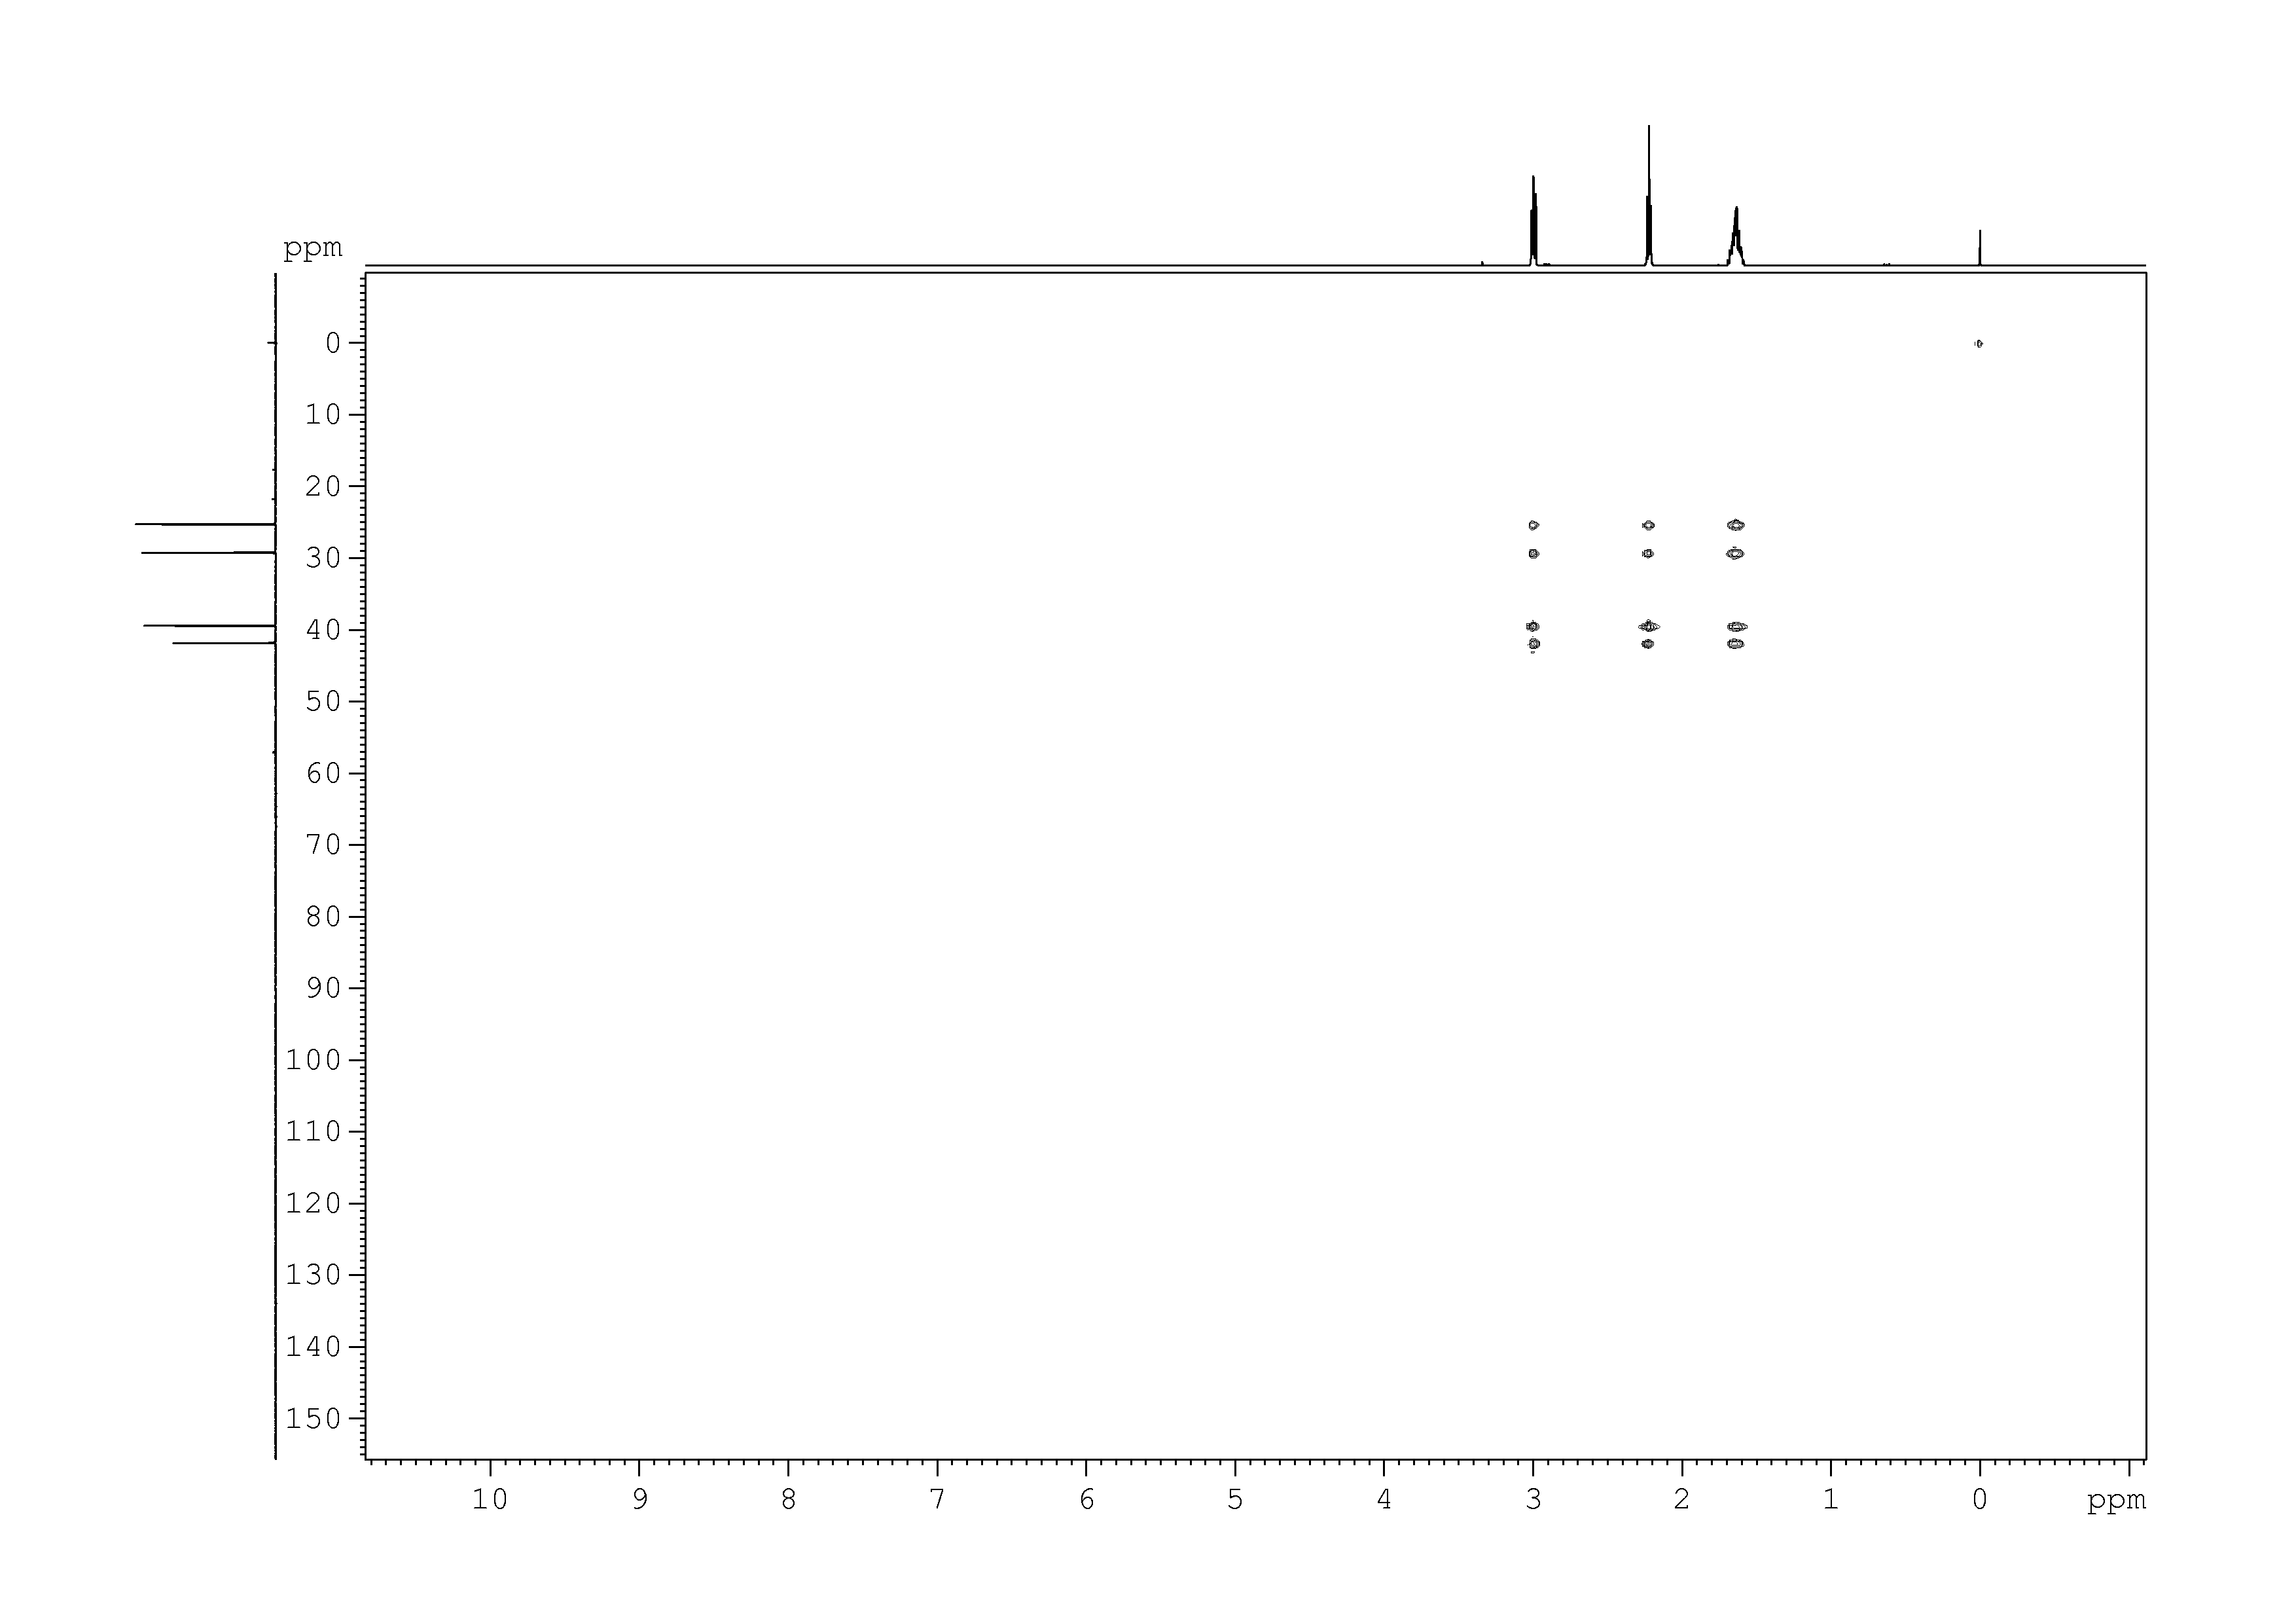 2D [1H,13C]-HMQC, 7.4 spectrum for 5-Aminovaleric acid